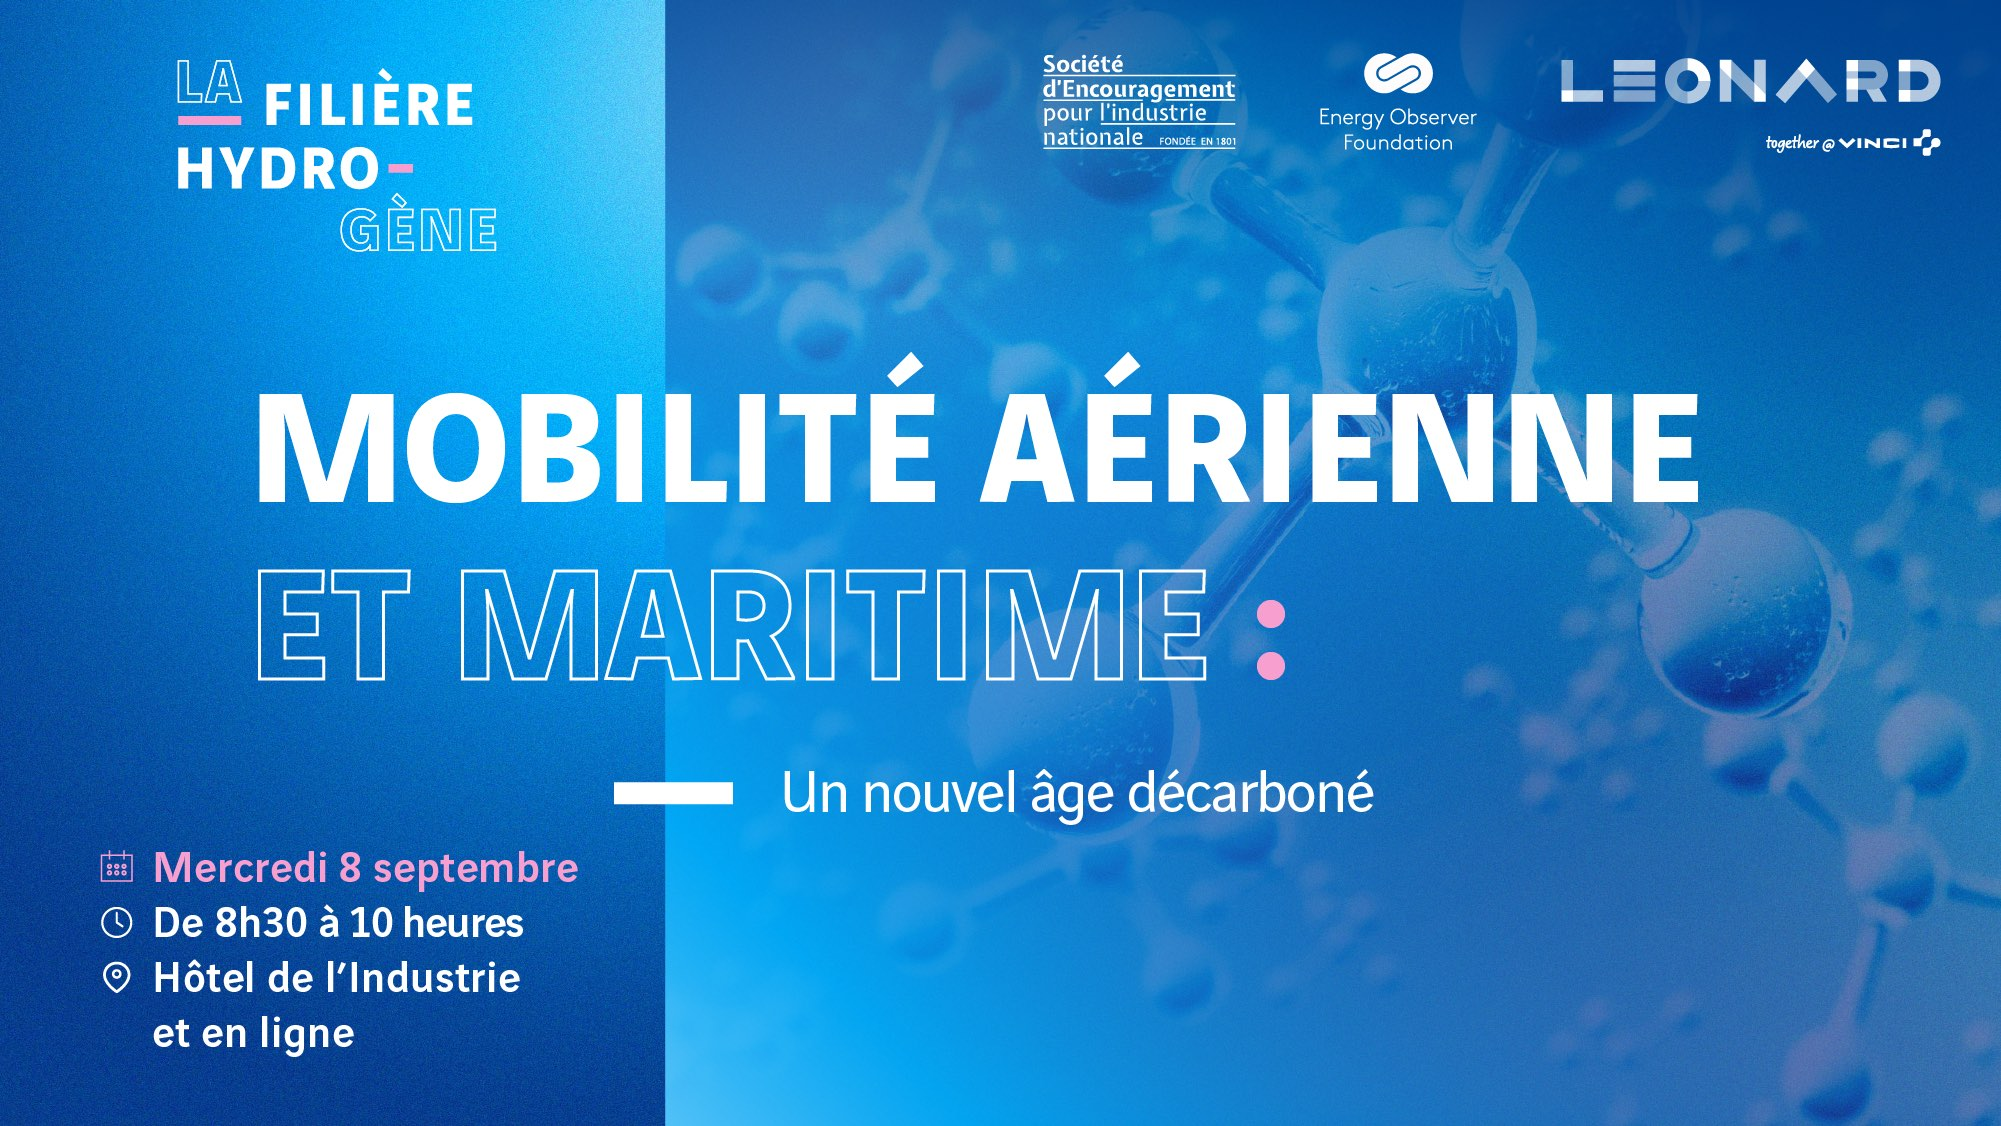 Air and maritime mobility: towards a new decarbonized age